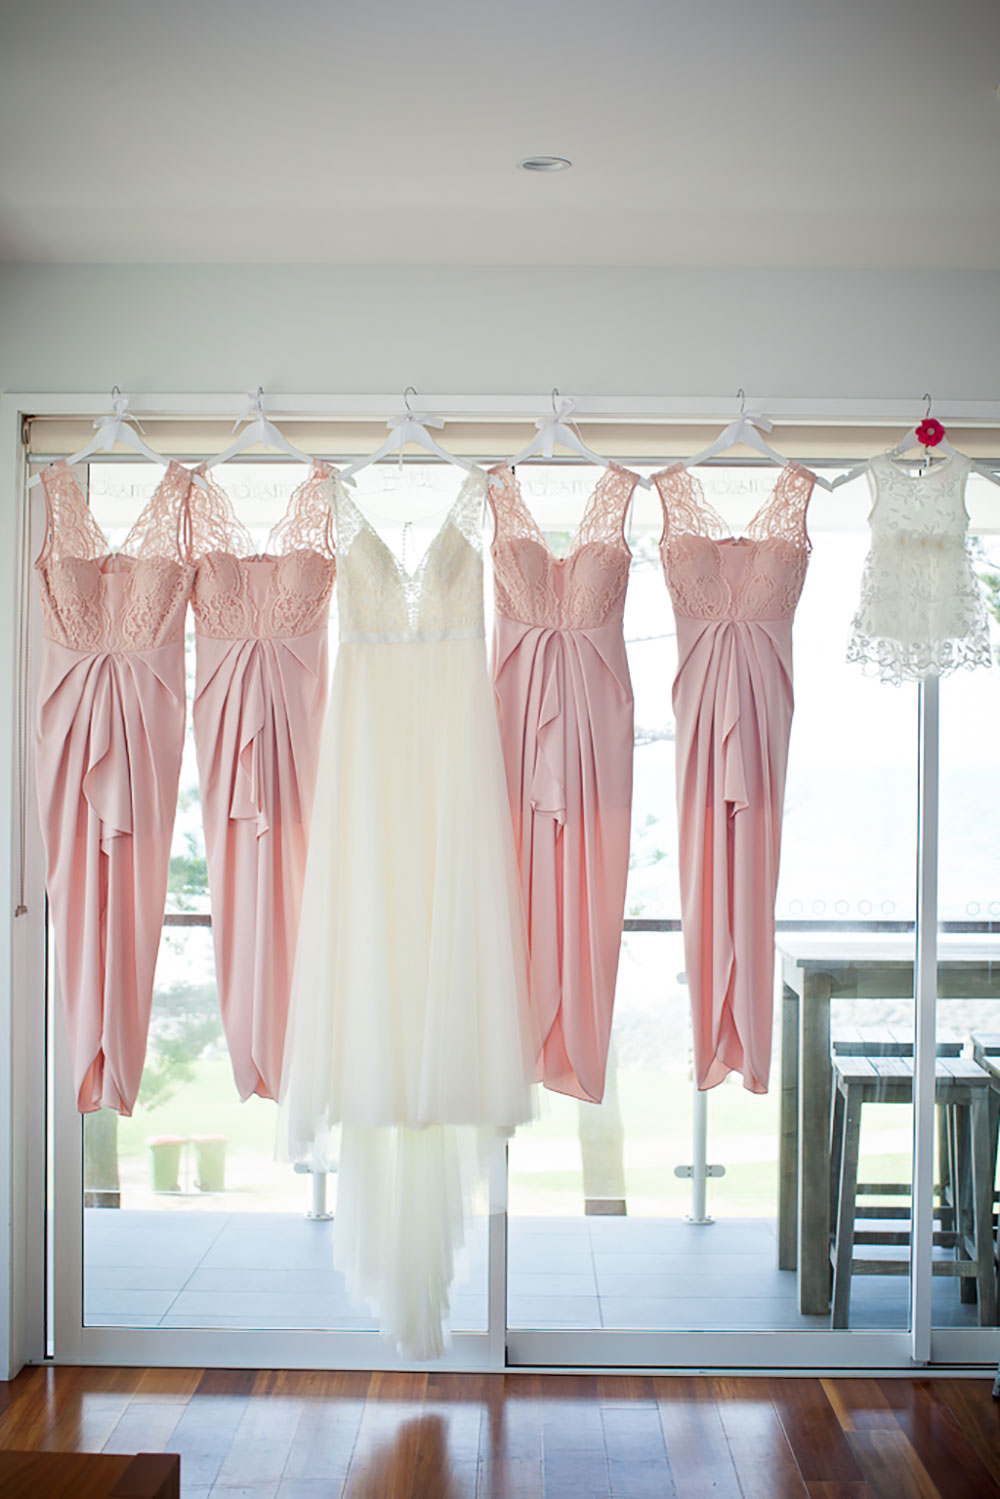 The dresses hanging up